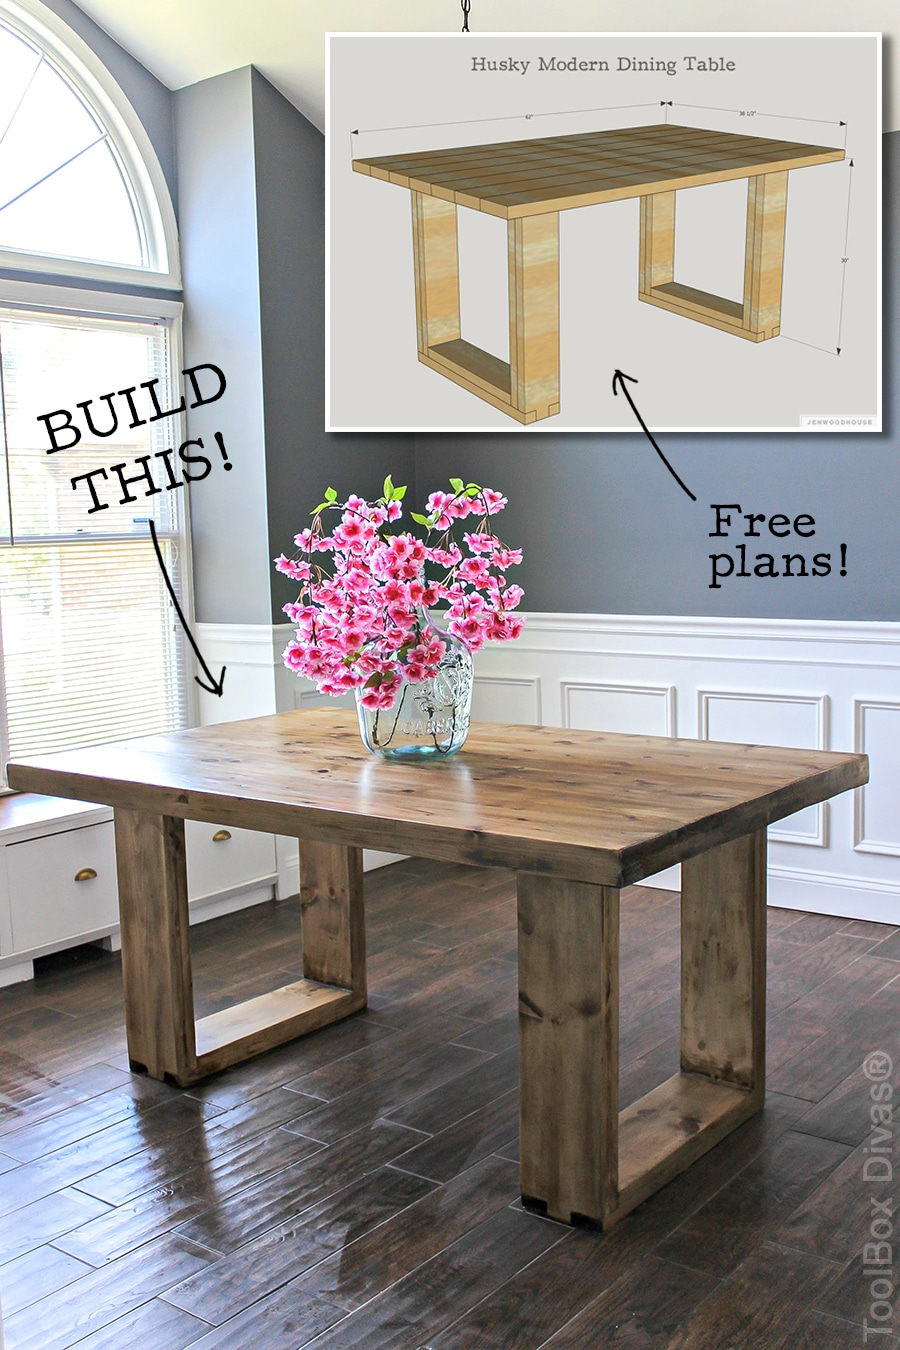 Diy Husky Modern Dining Table